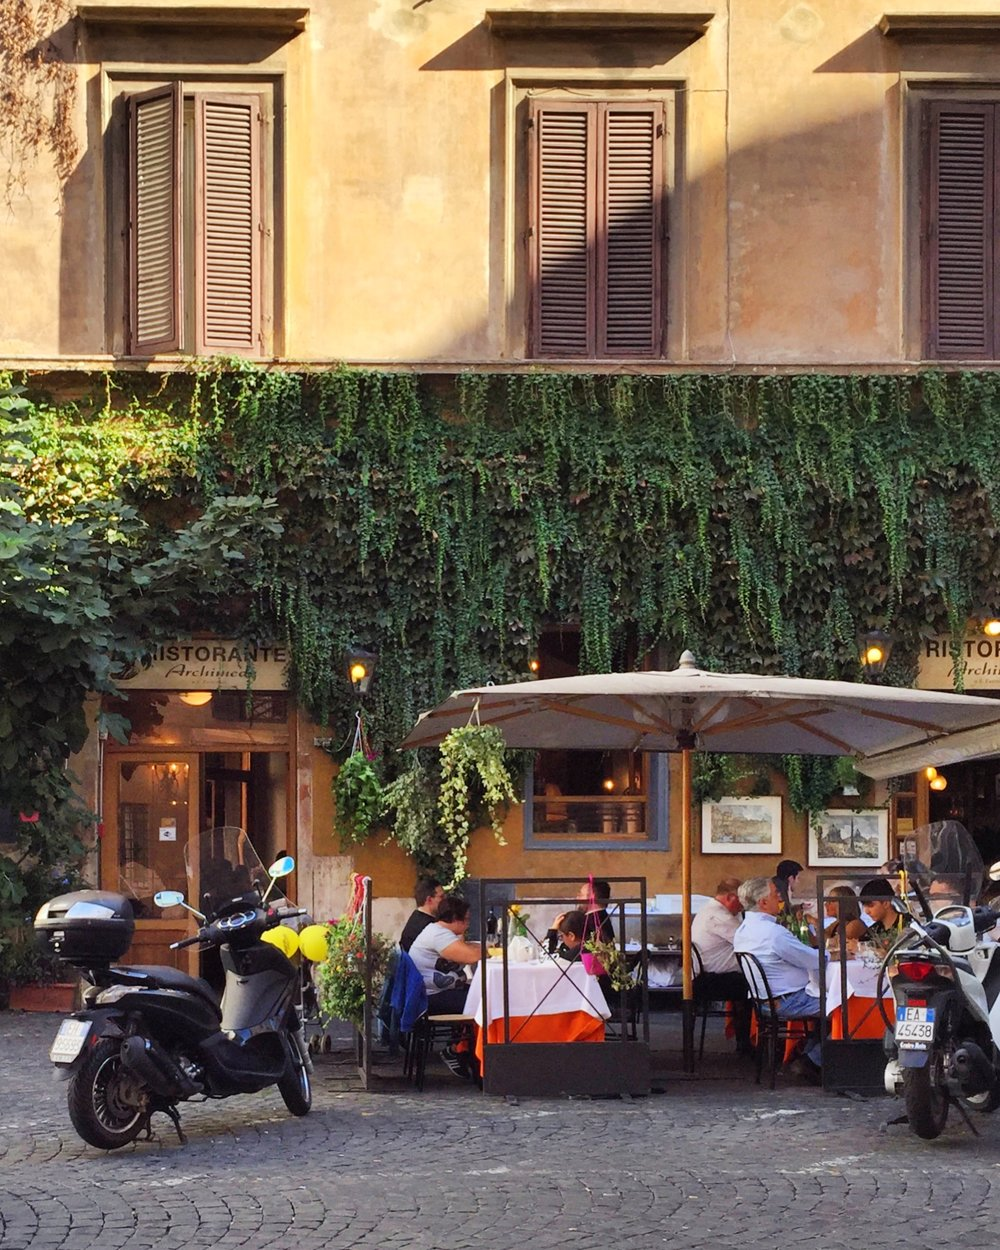 11 Mistakes Most Tourists Make in Rome (The Points Guy)   Italy consistently ranks as one of the world's most popular places to visit and first-time visitors almost always go to Rome